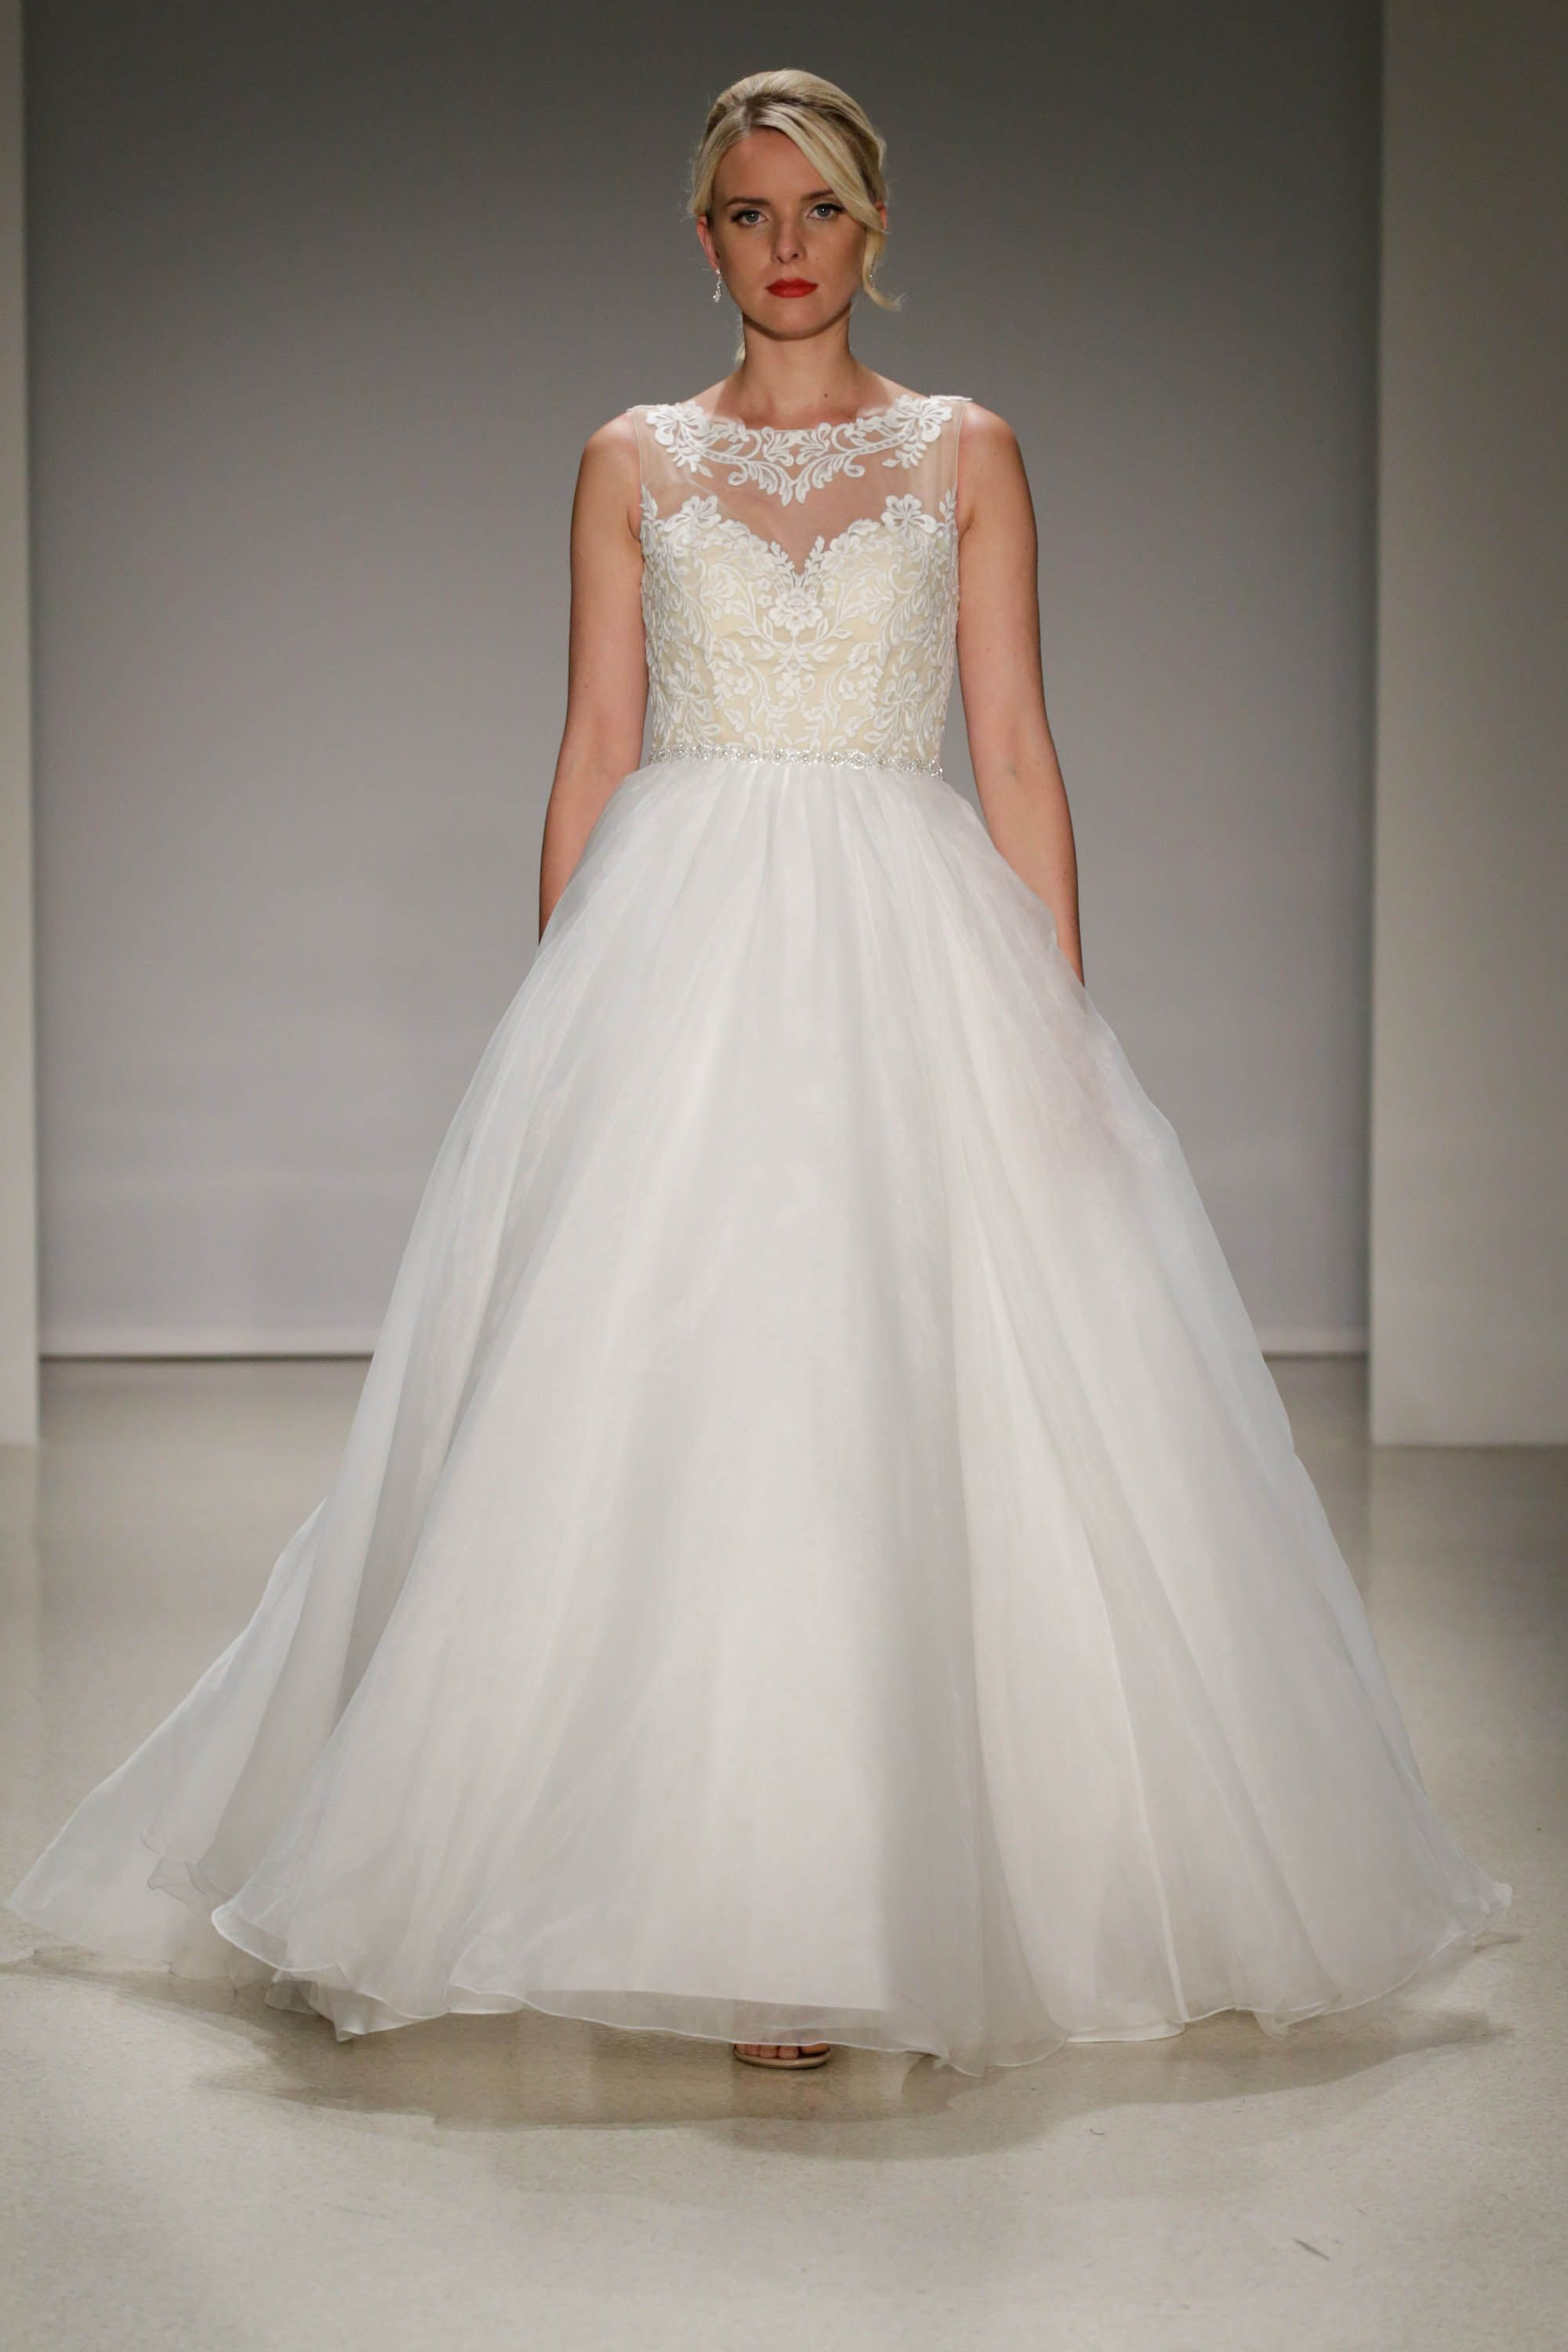 Ball Gown Wedding Dress With Lace Bodice And Sheer Yoke